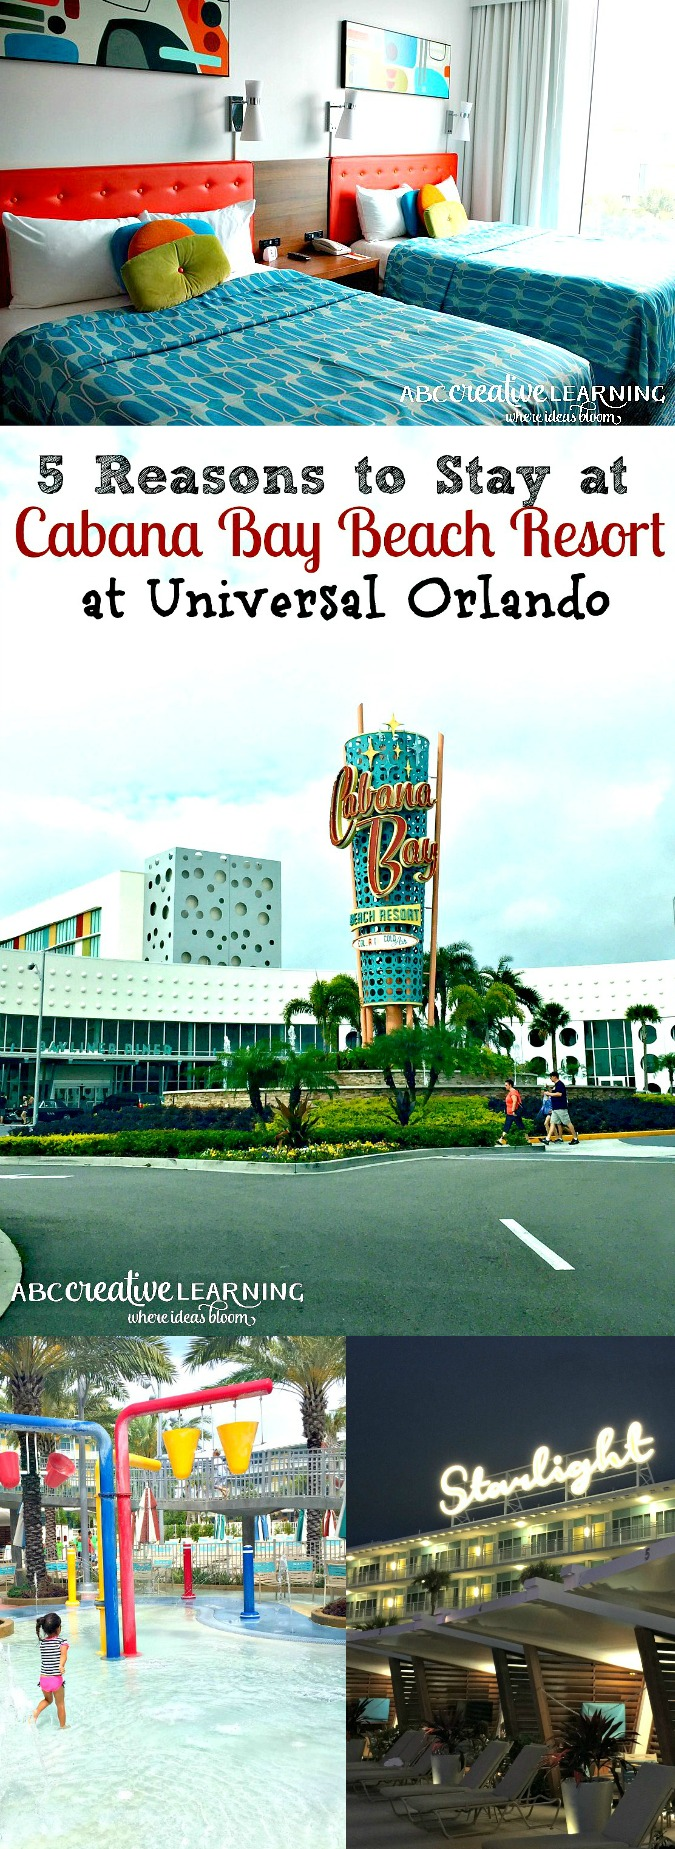 5 Reasons to Stay at Cabana Bay Beach Resort at Universal Orlando Resorts Florida - simplytodaylife.com